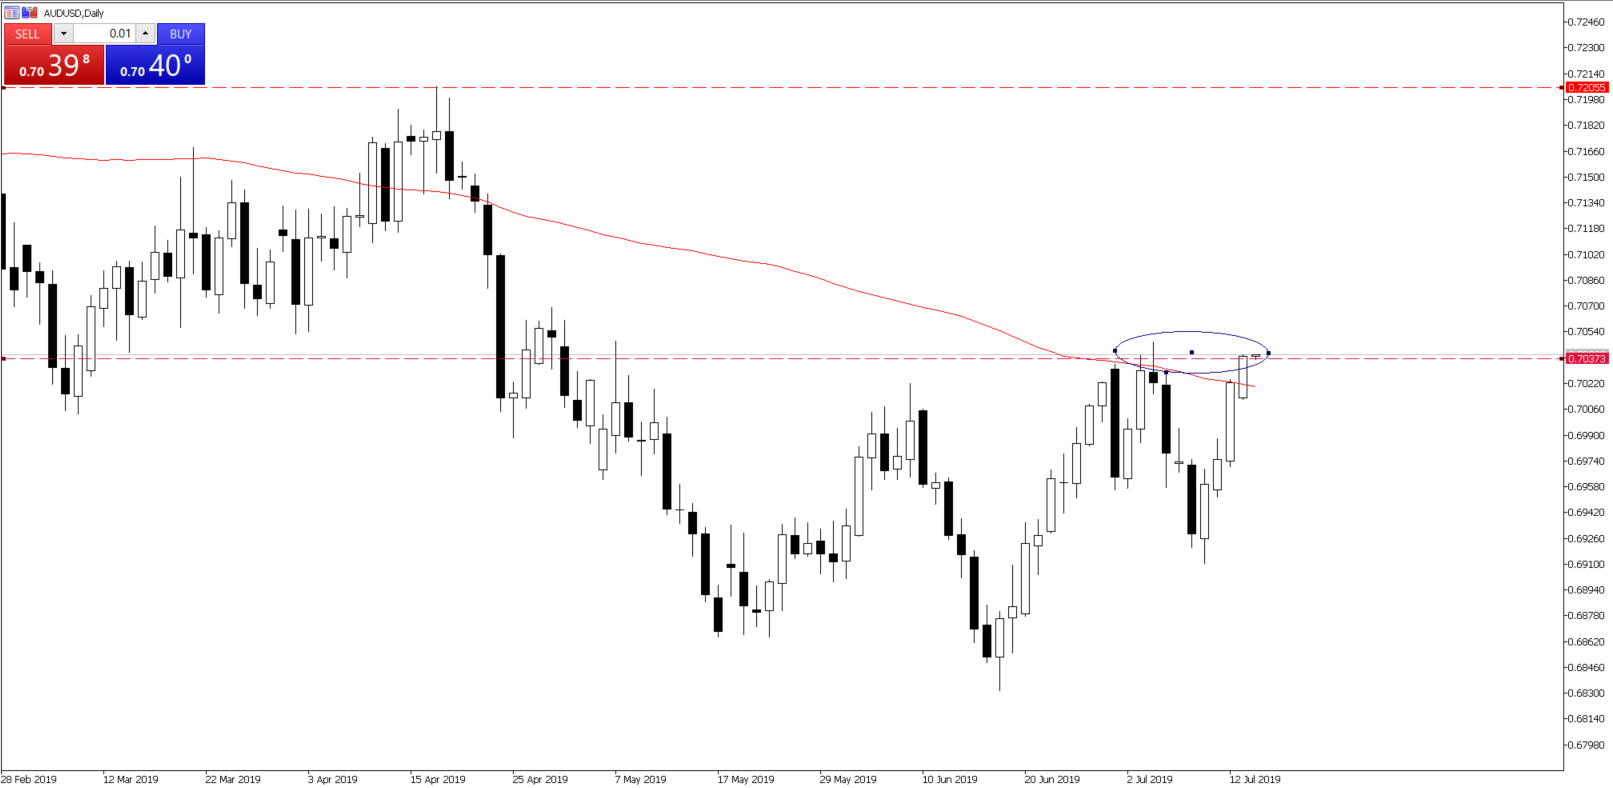 Chart of the Day - July 16, 2019 - AUDUSD daily